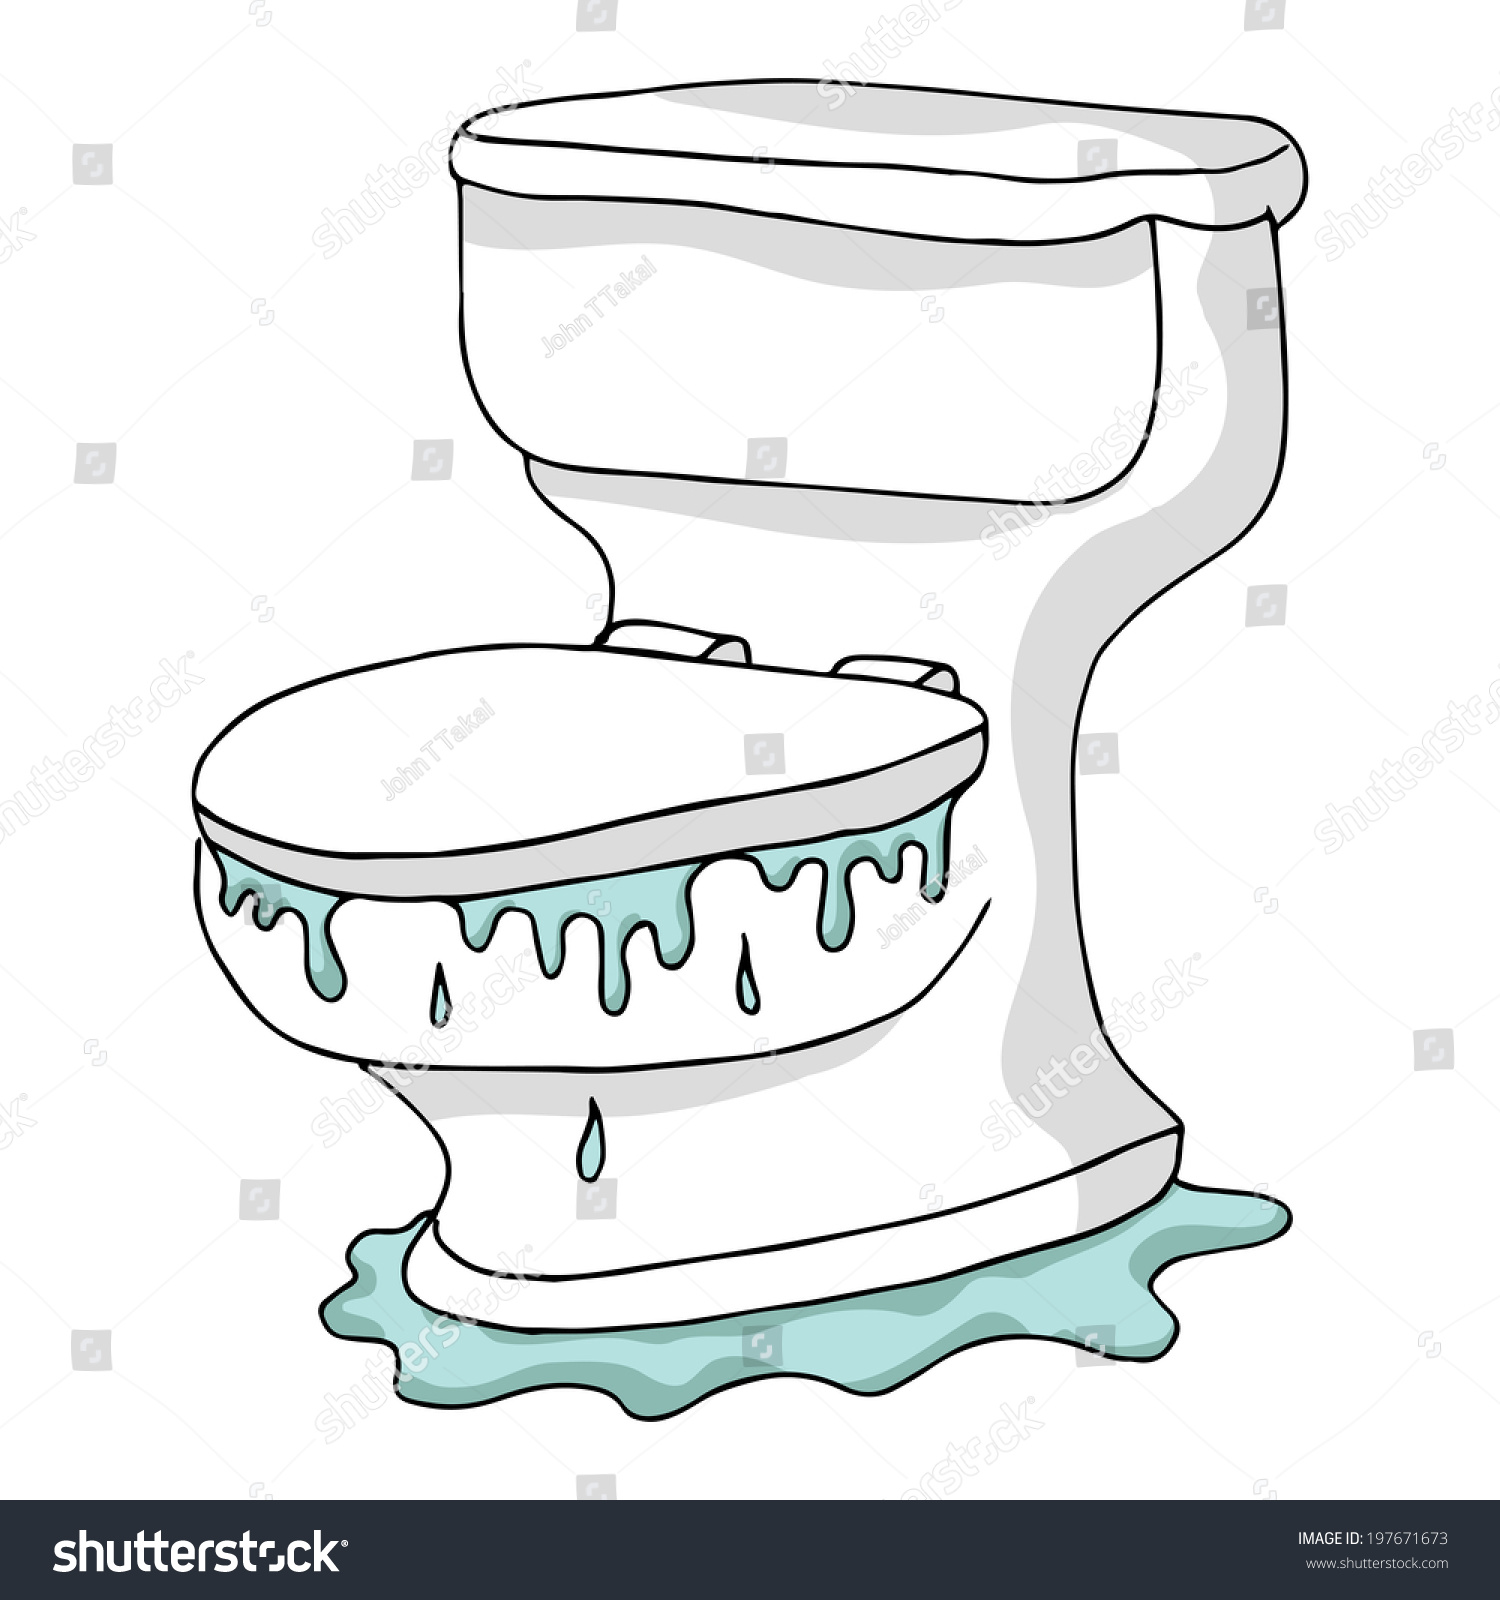 Image Overflowing Toilet Stock Illustration 197671673